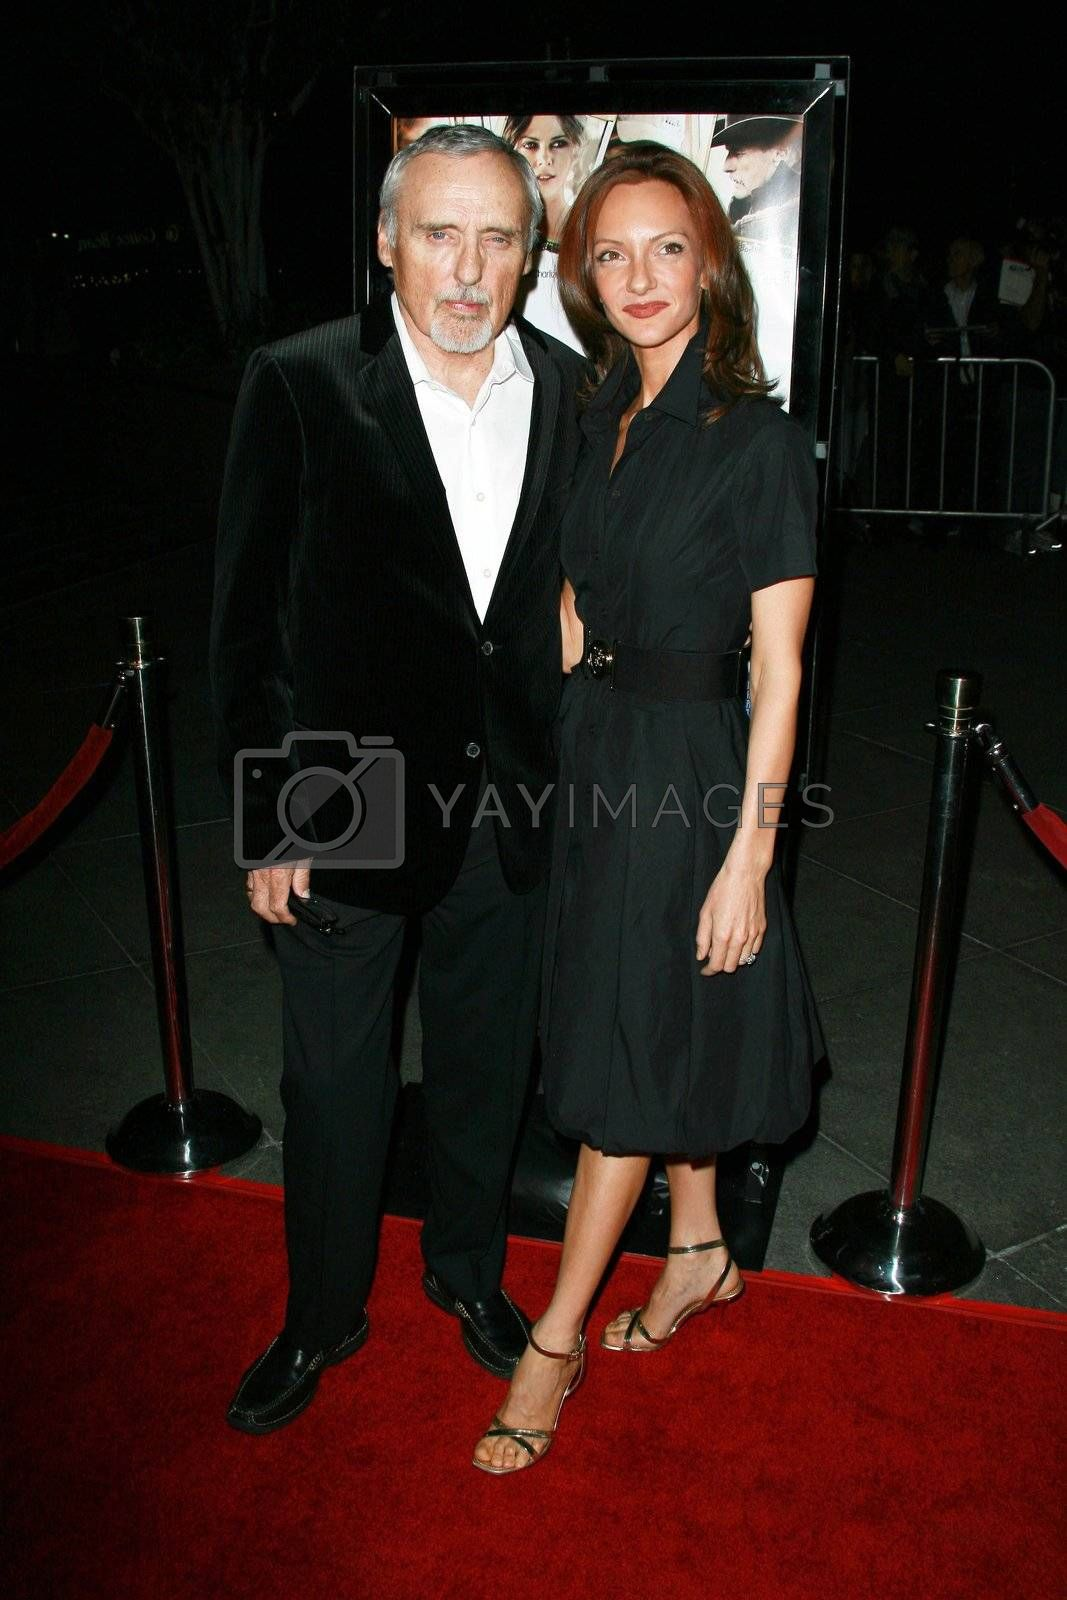 Dennis Hopper and wife Victoria   at the Sleepwalking Premiere held at the Directors Guild of America, Hollywood.